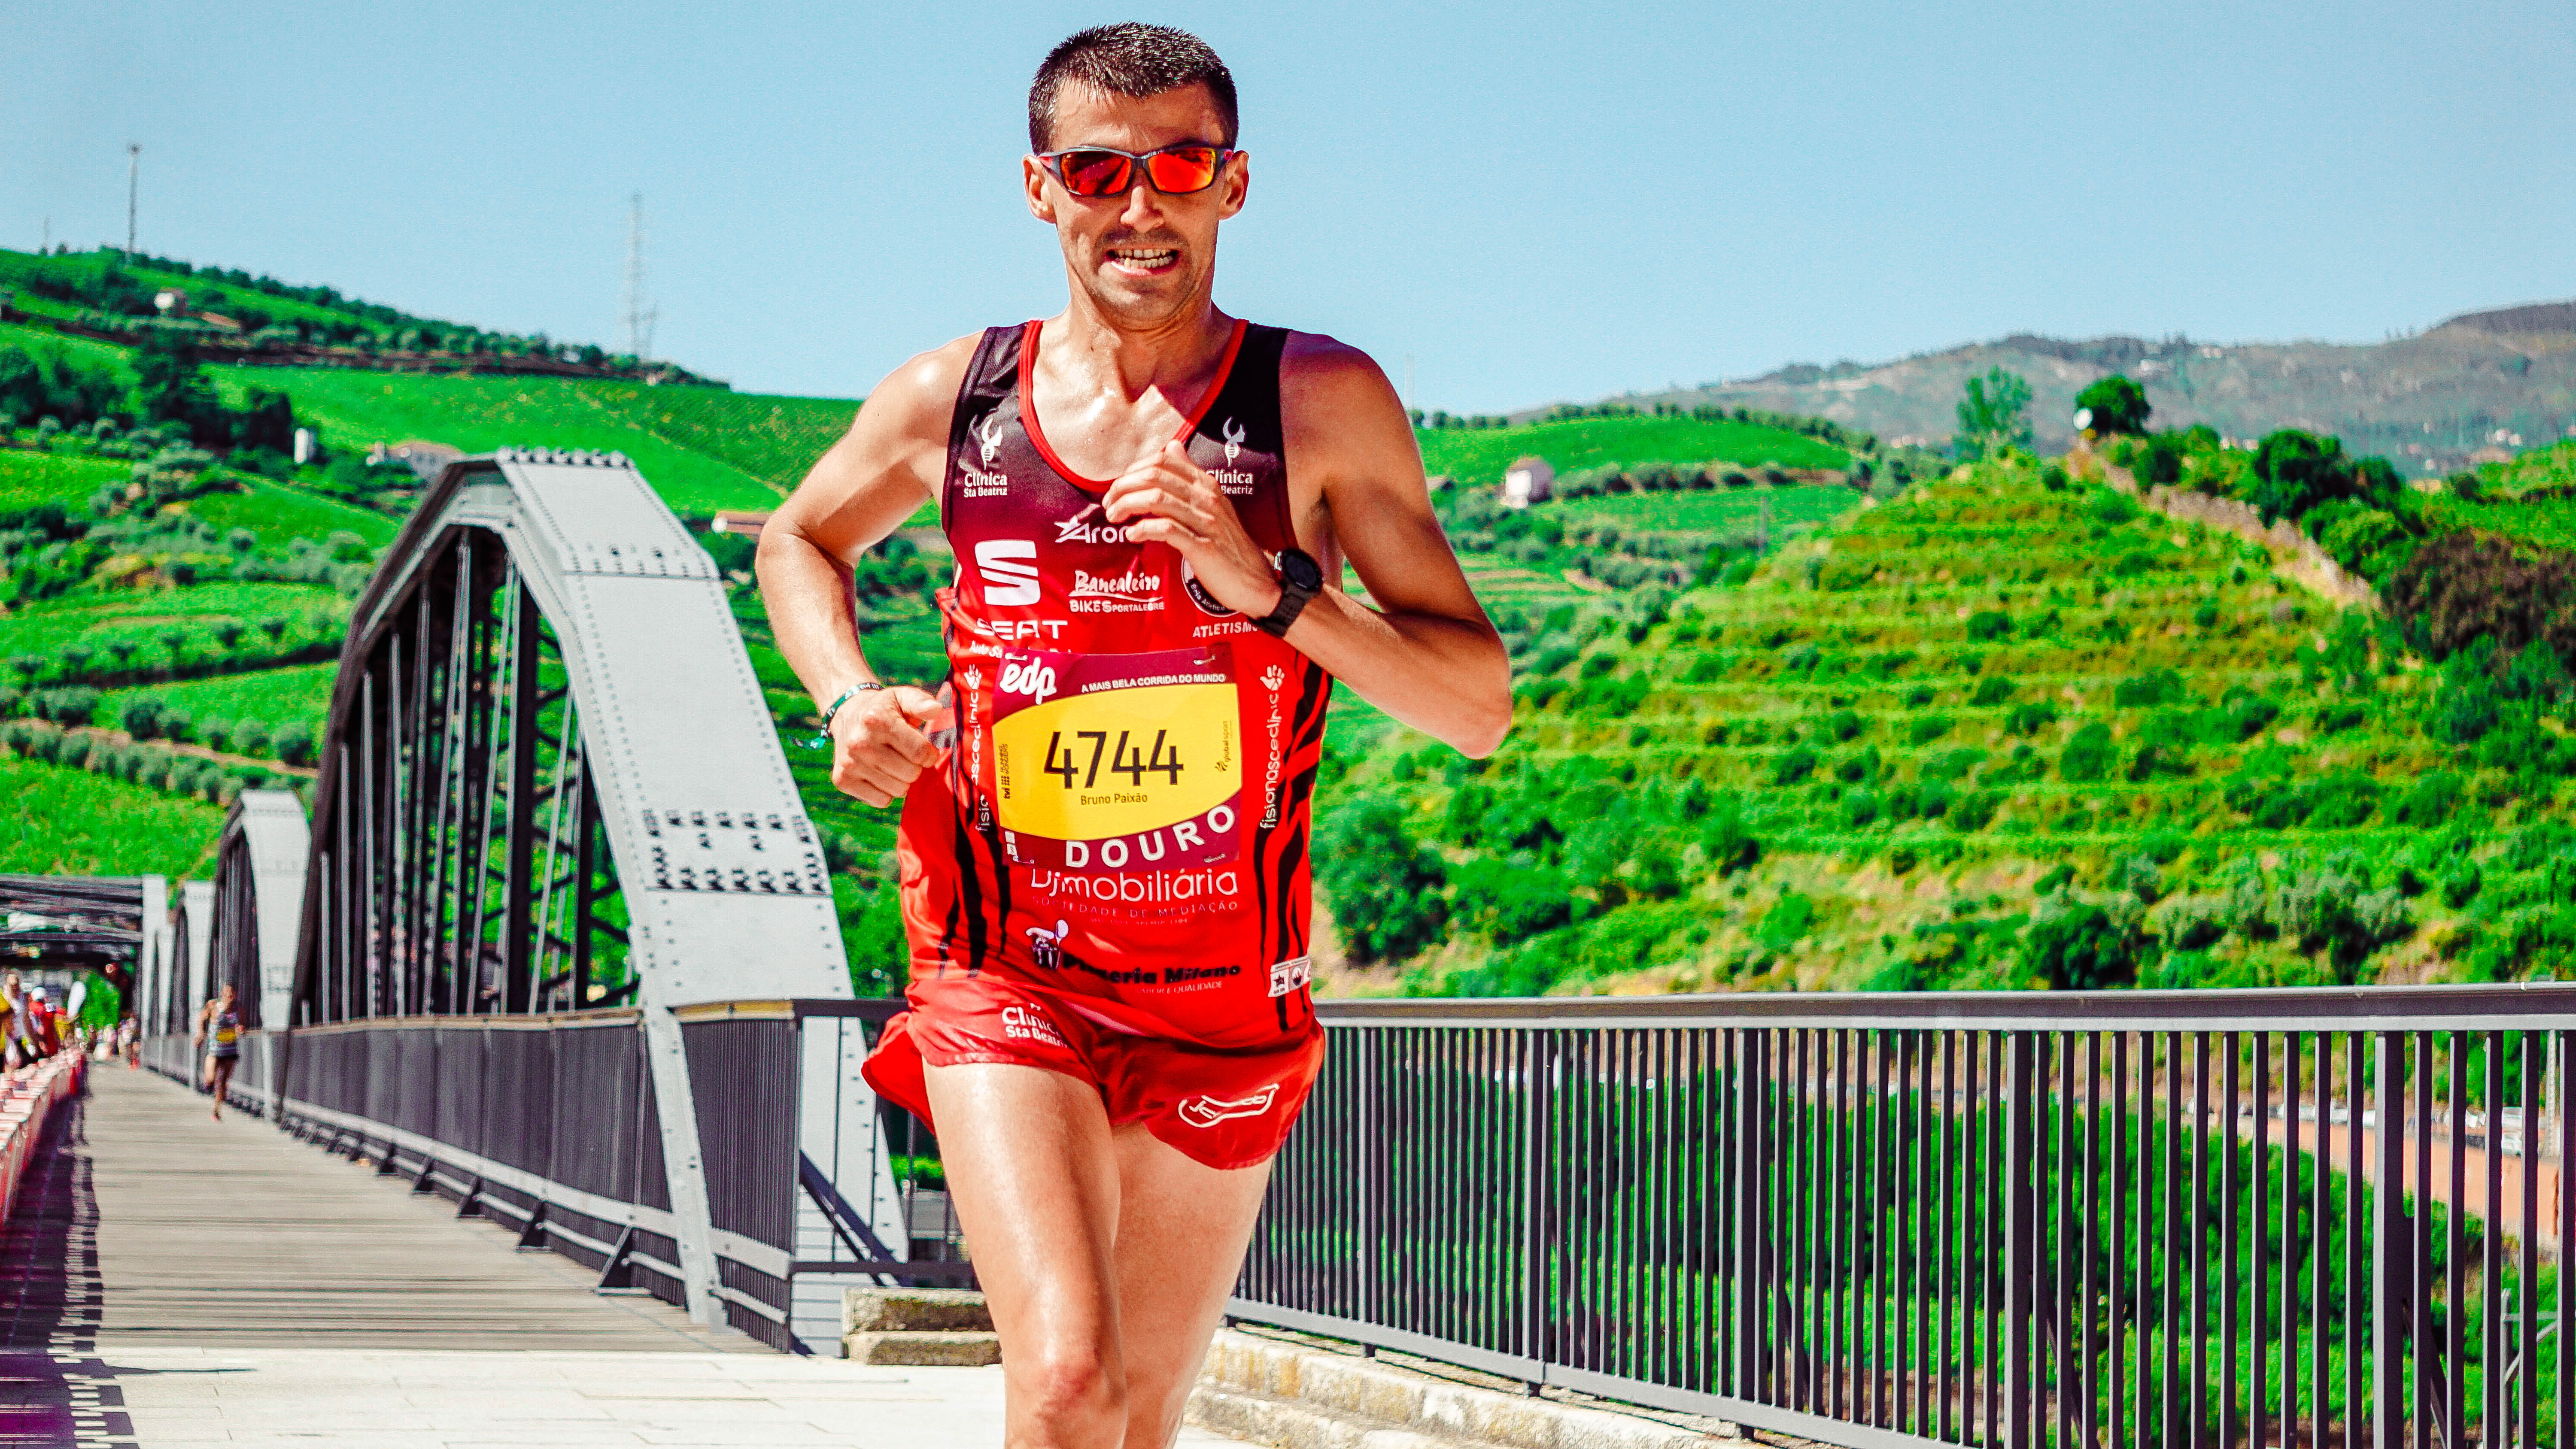 Male Runner Wearing Jersey With Bib Number 4744